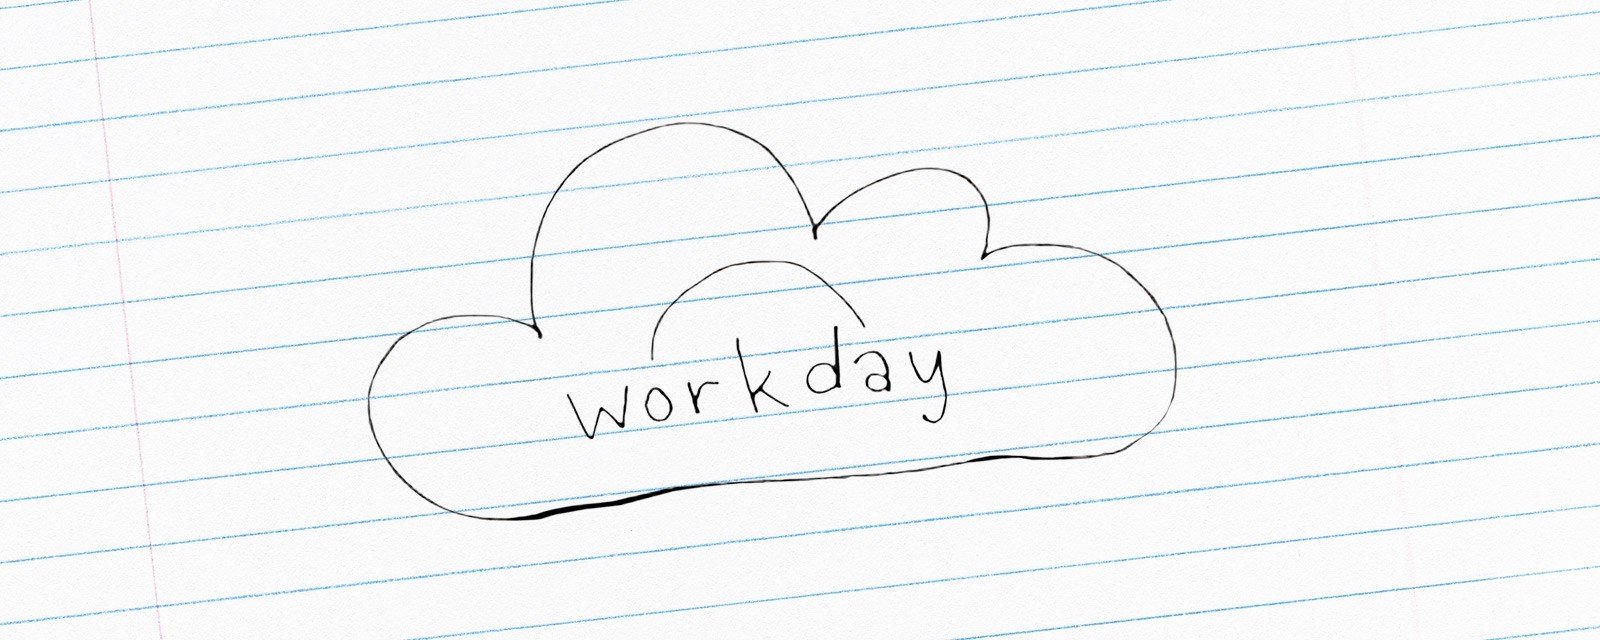 Why Workday Is Different by Design, and Why It Matters